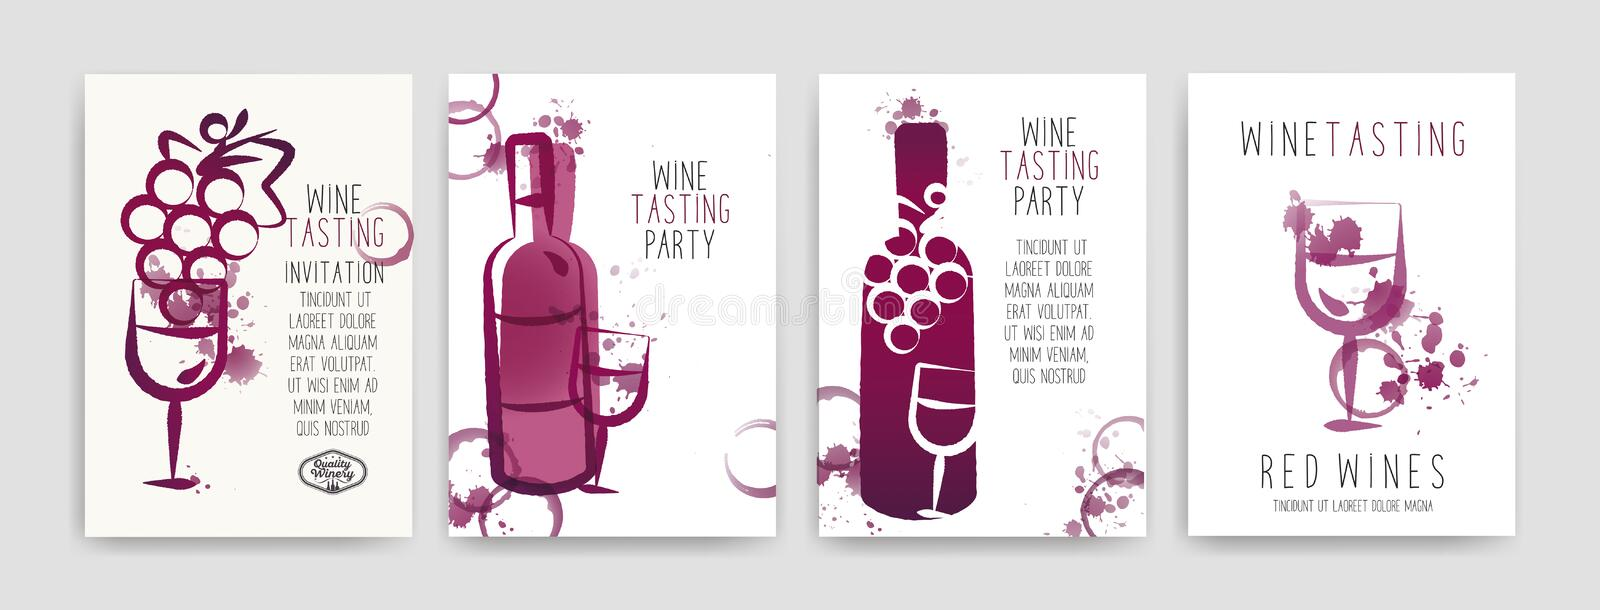 Collection de calibres avec des conceptions de vin Brochures, affiches, cartes d'invitation, bannières de promotion, menus Taches illustration libre de droits